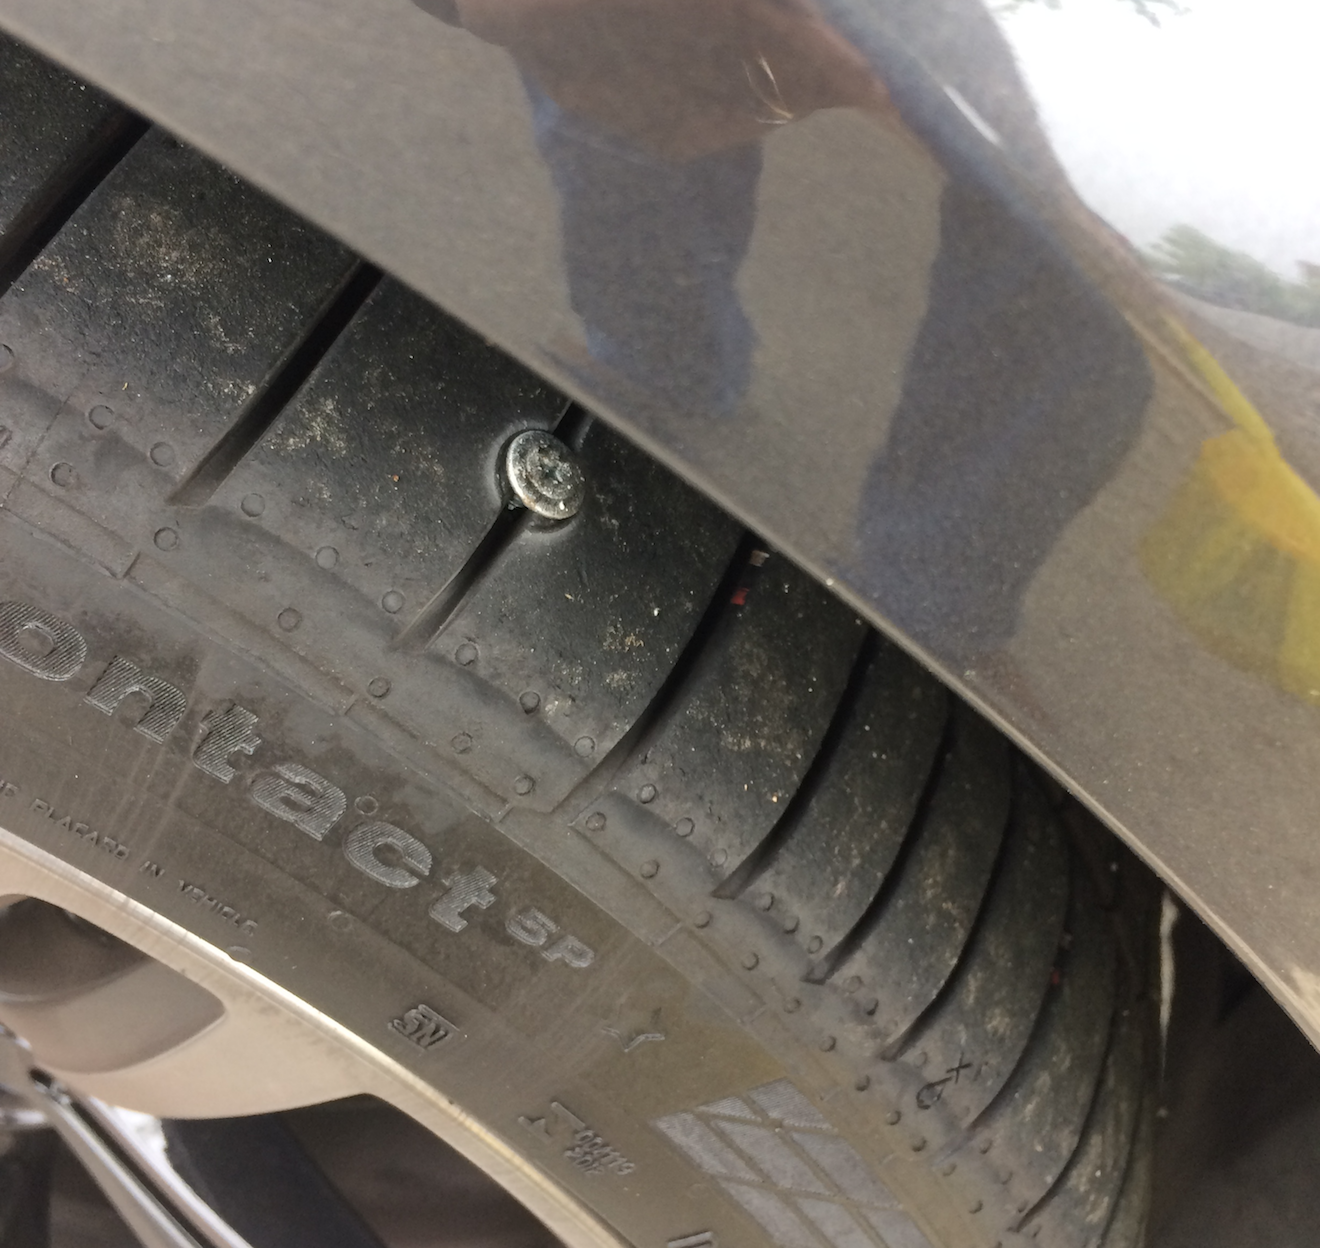 Nail in tire - plug or replace?